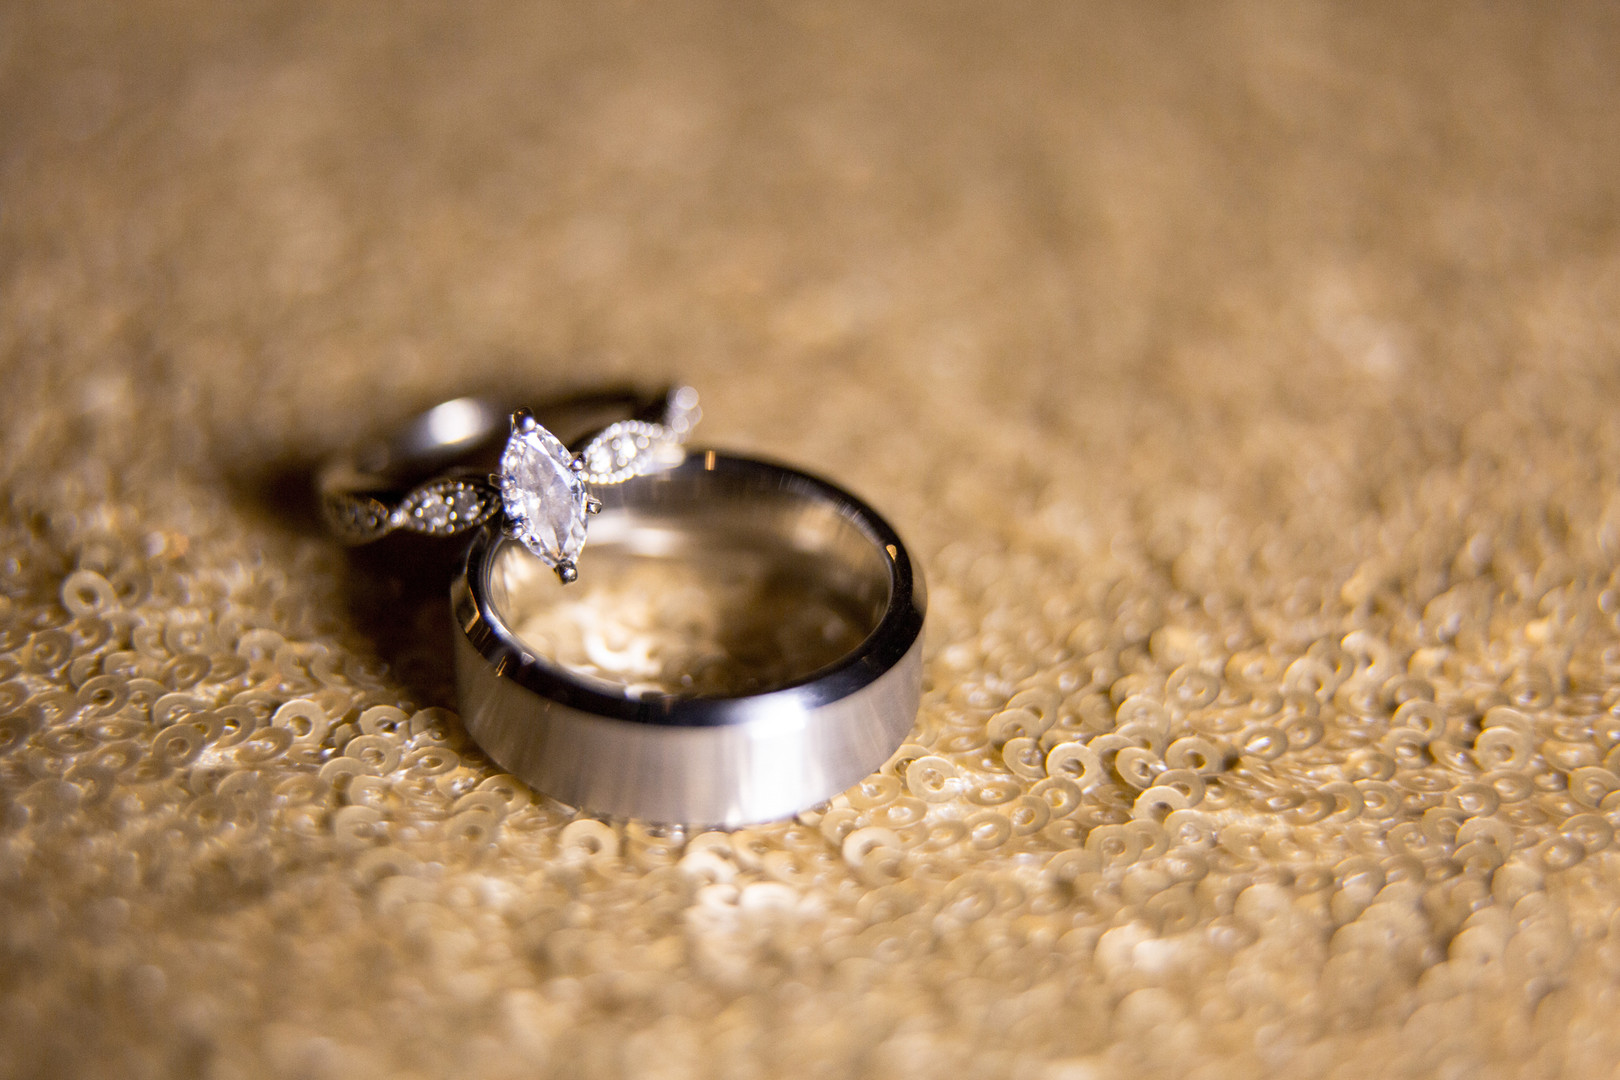 macro ring shot of wedding rings with blurry sequin background